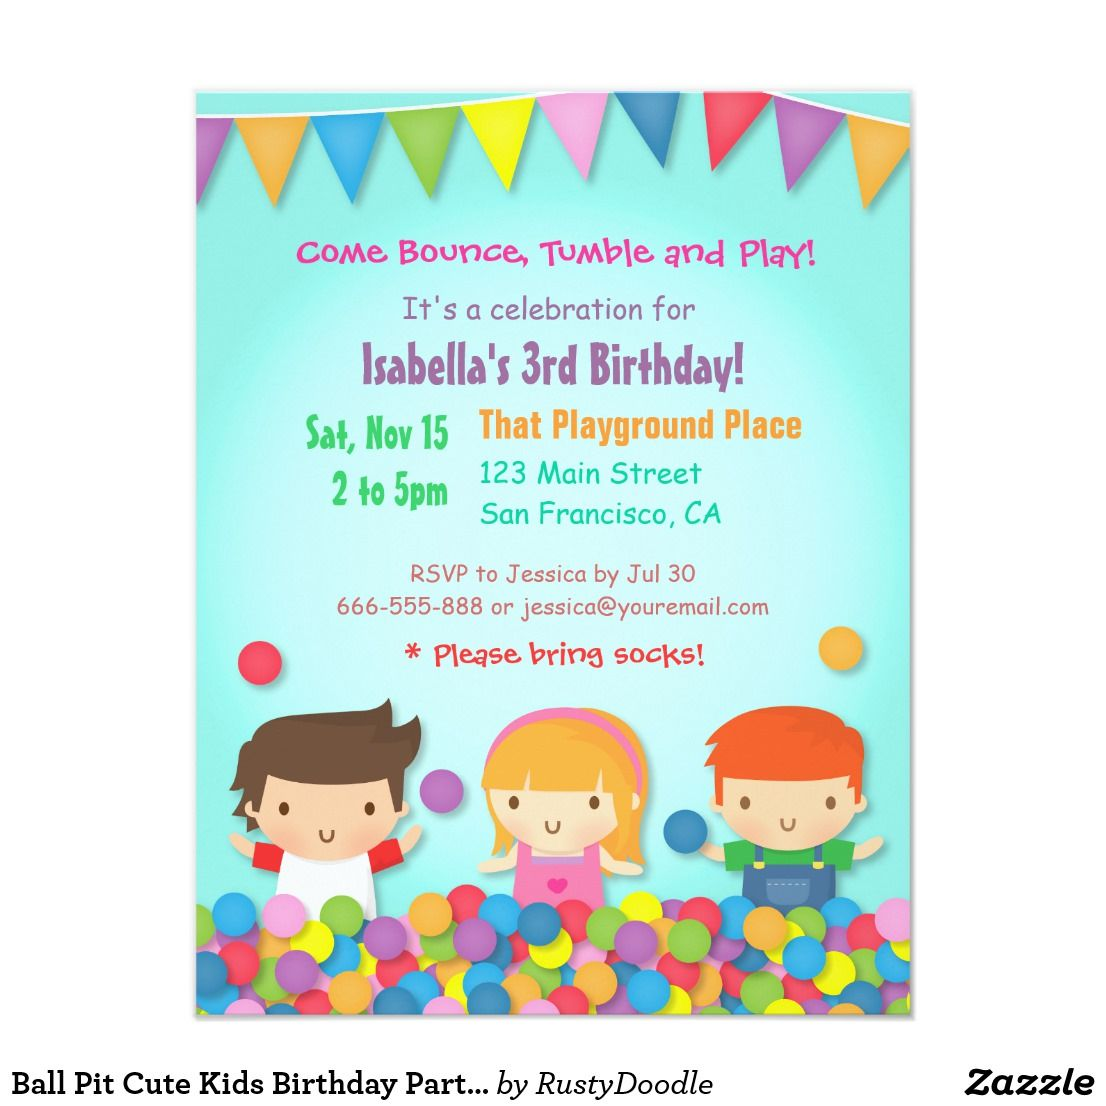 Ball Pit Cute Kids Birthday Party Invitations | Kids birthday party ...